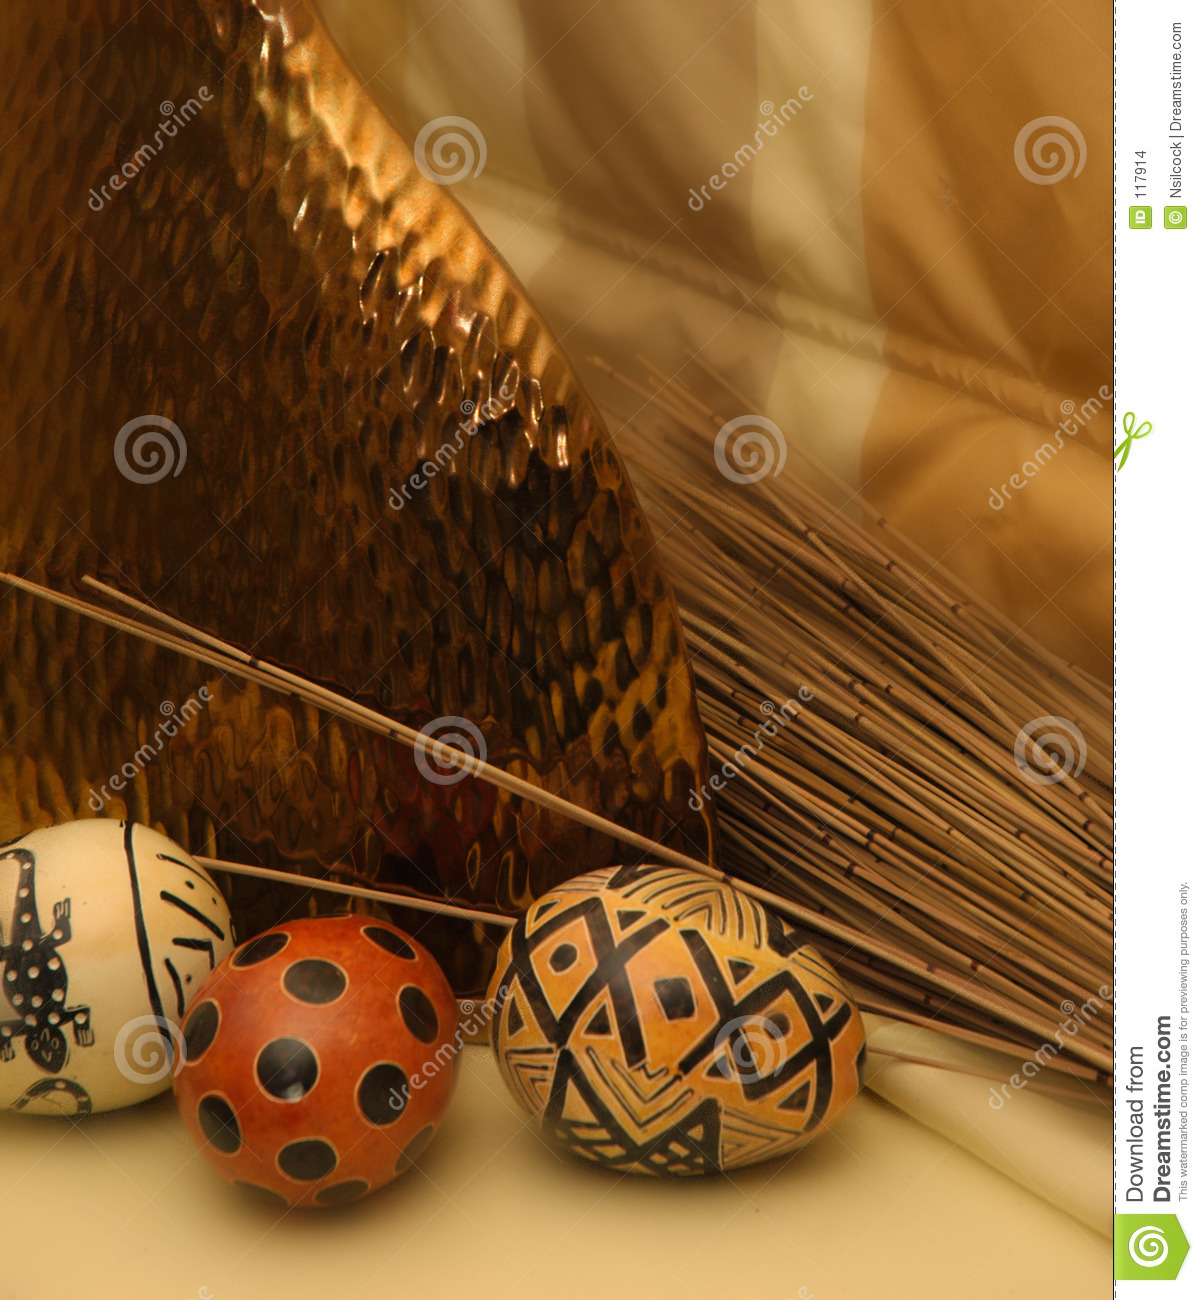 African Theme Stock Images - Image: 117914